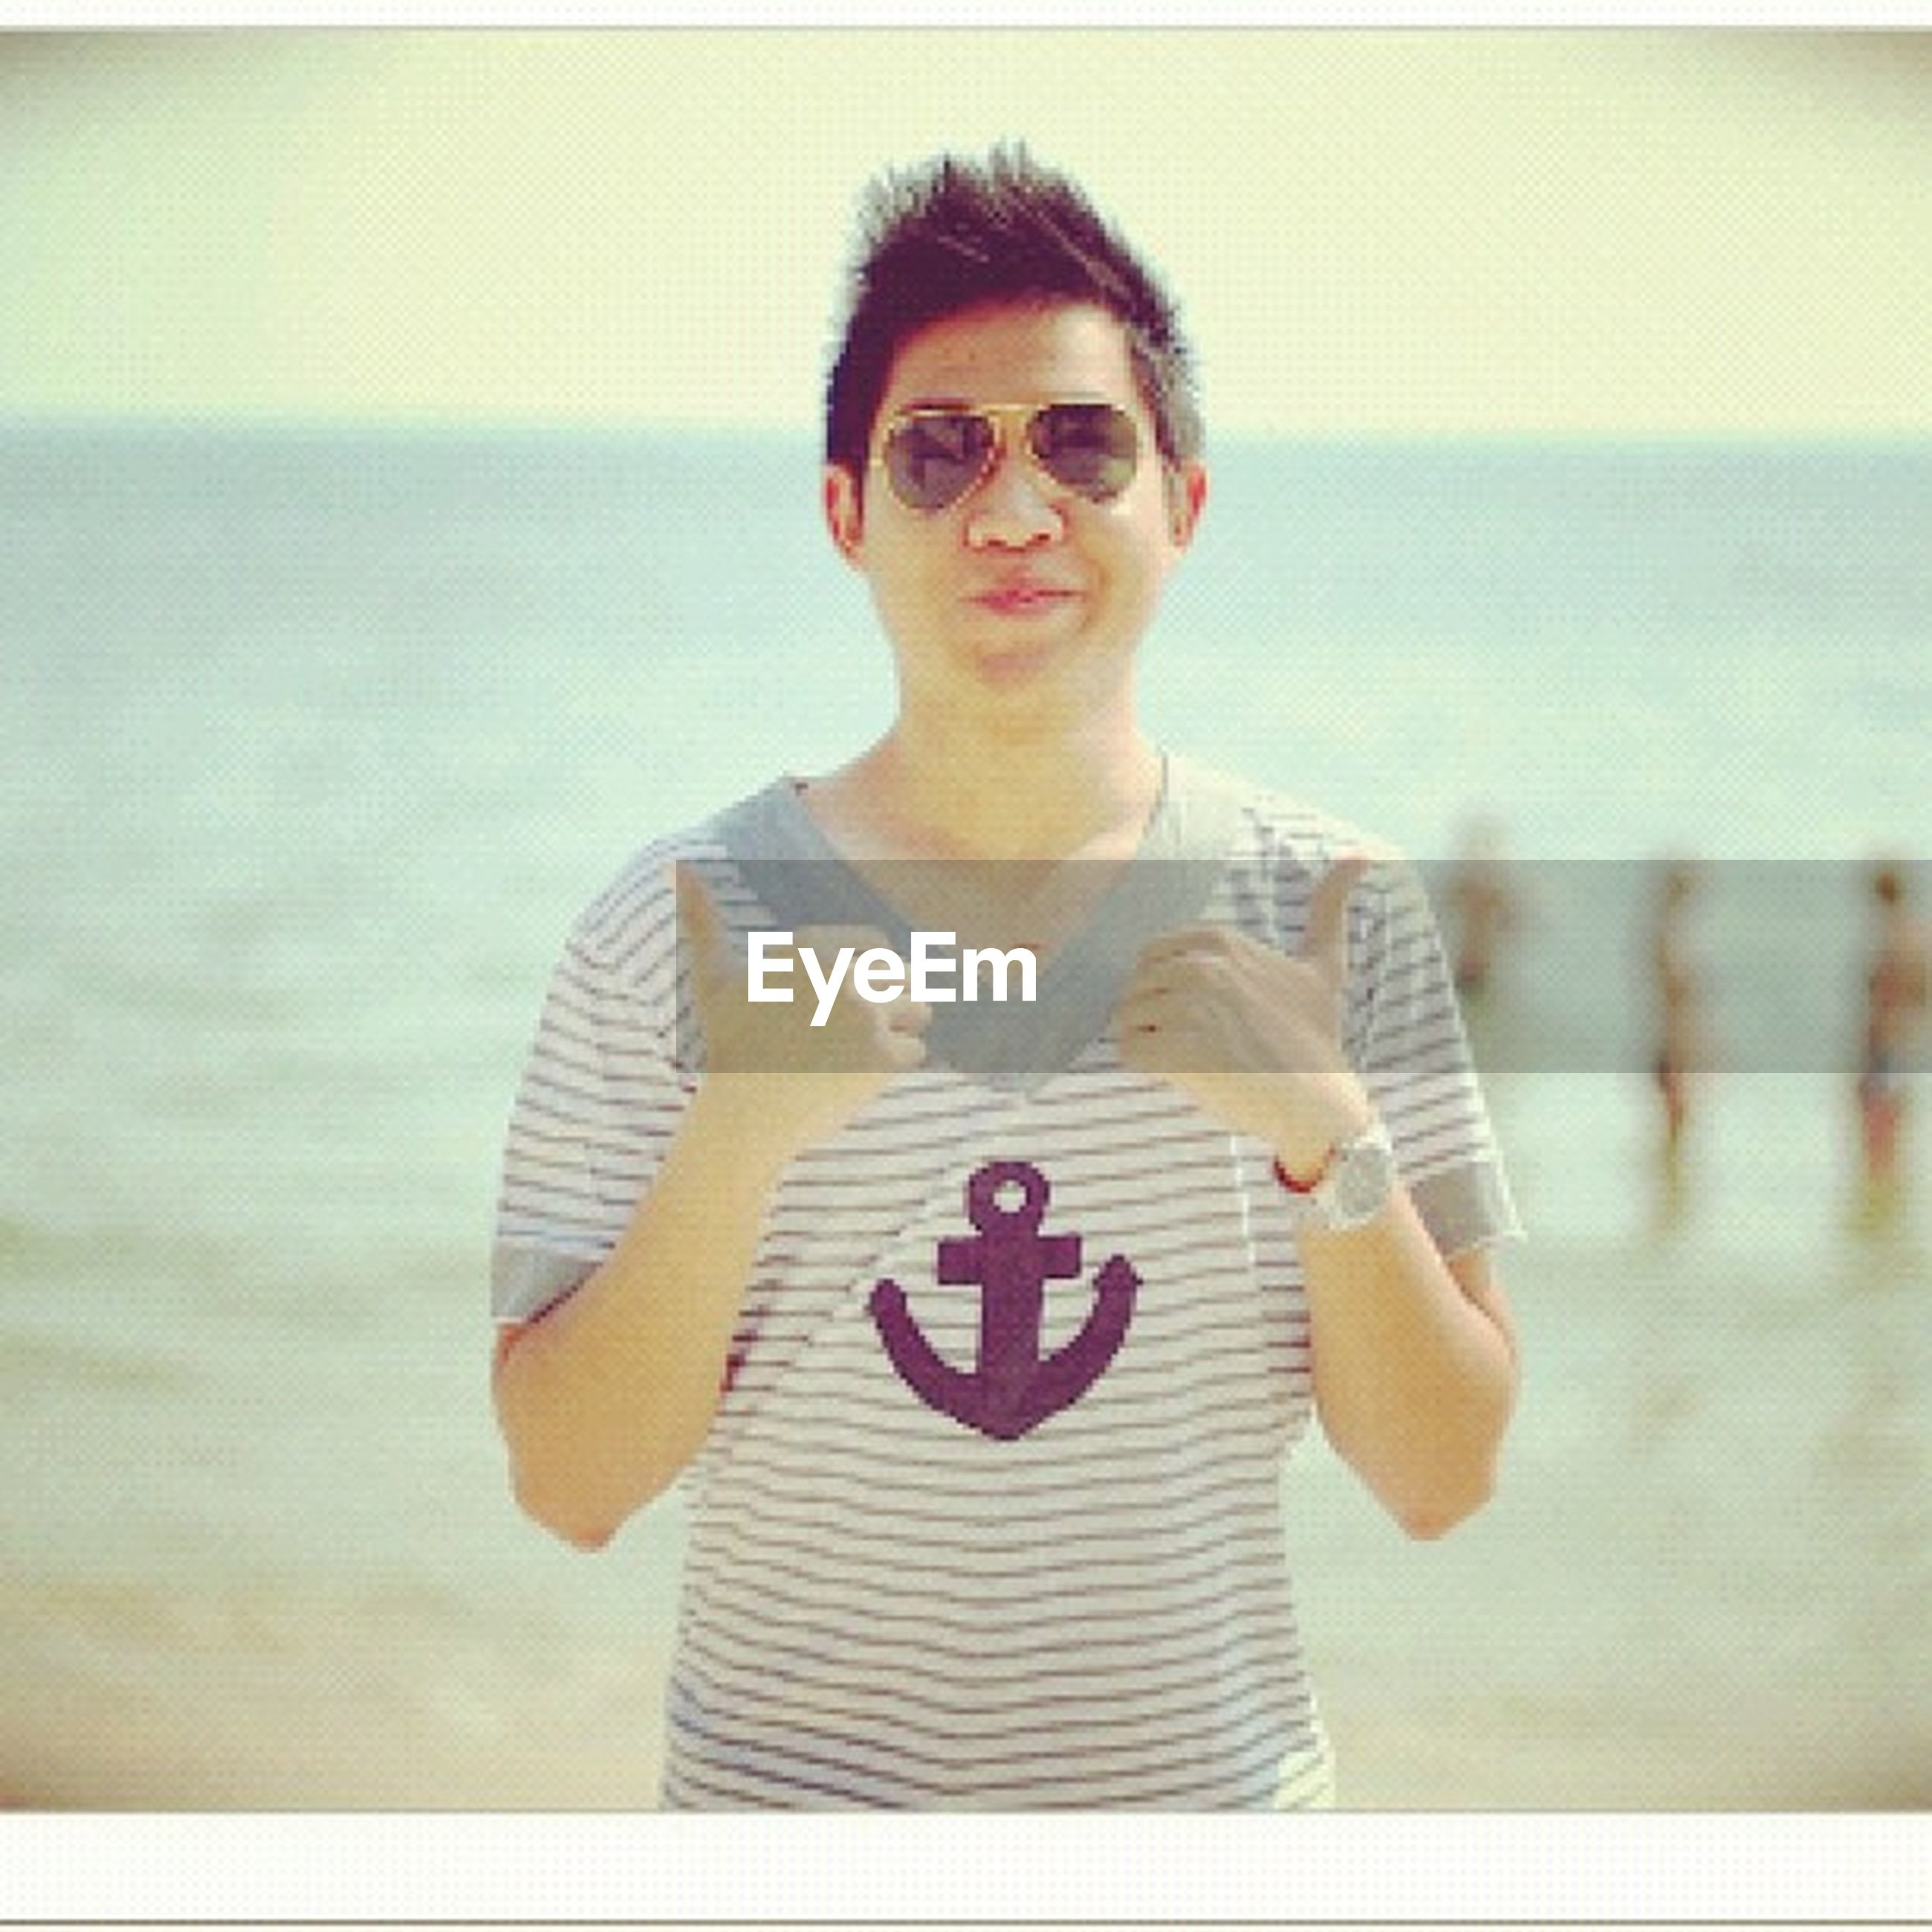 portrait, sea, looking at camera, person, water, front view, young adult, lifestyles, leisure activity, focus on foreground, beach, horizon over water, smiling, sunglasses, happiness, casual clothing, waist up, standing